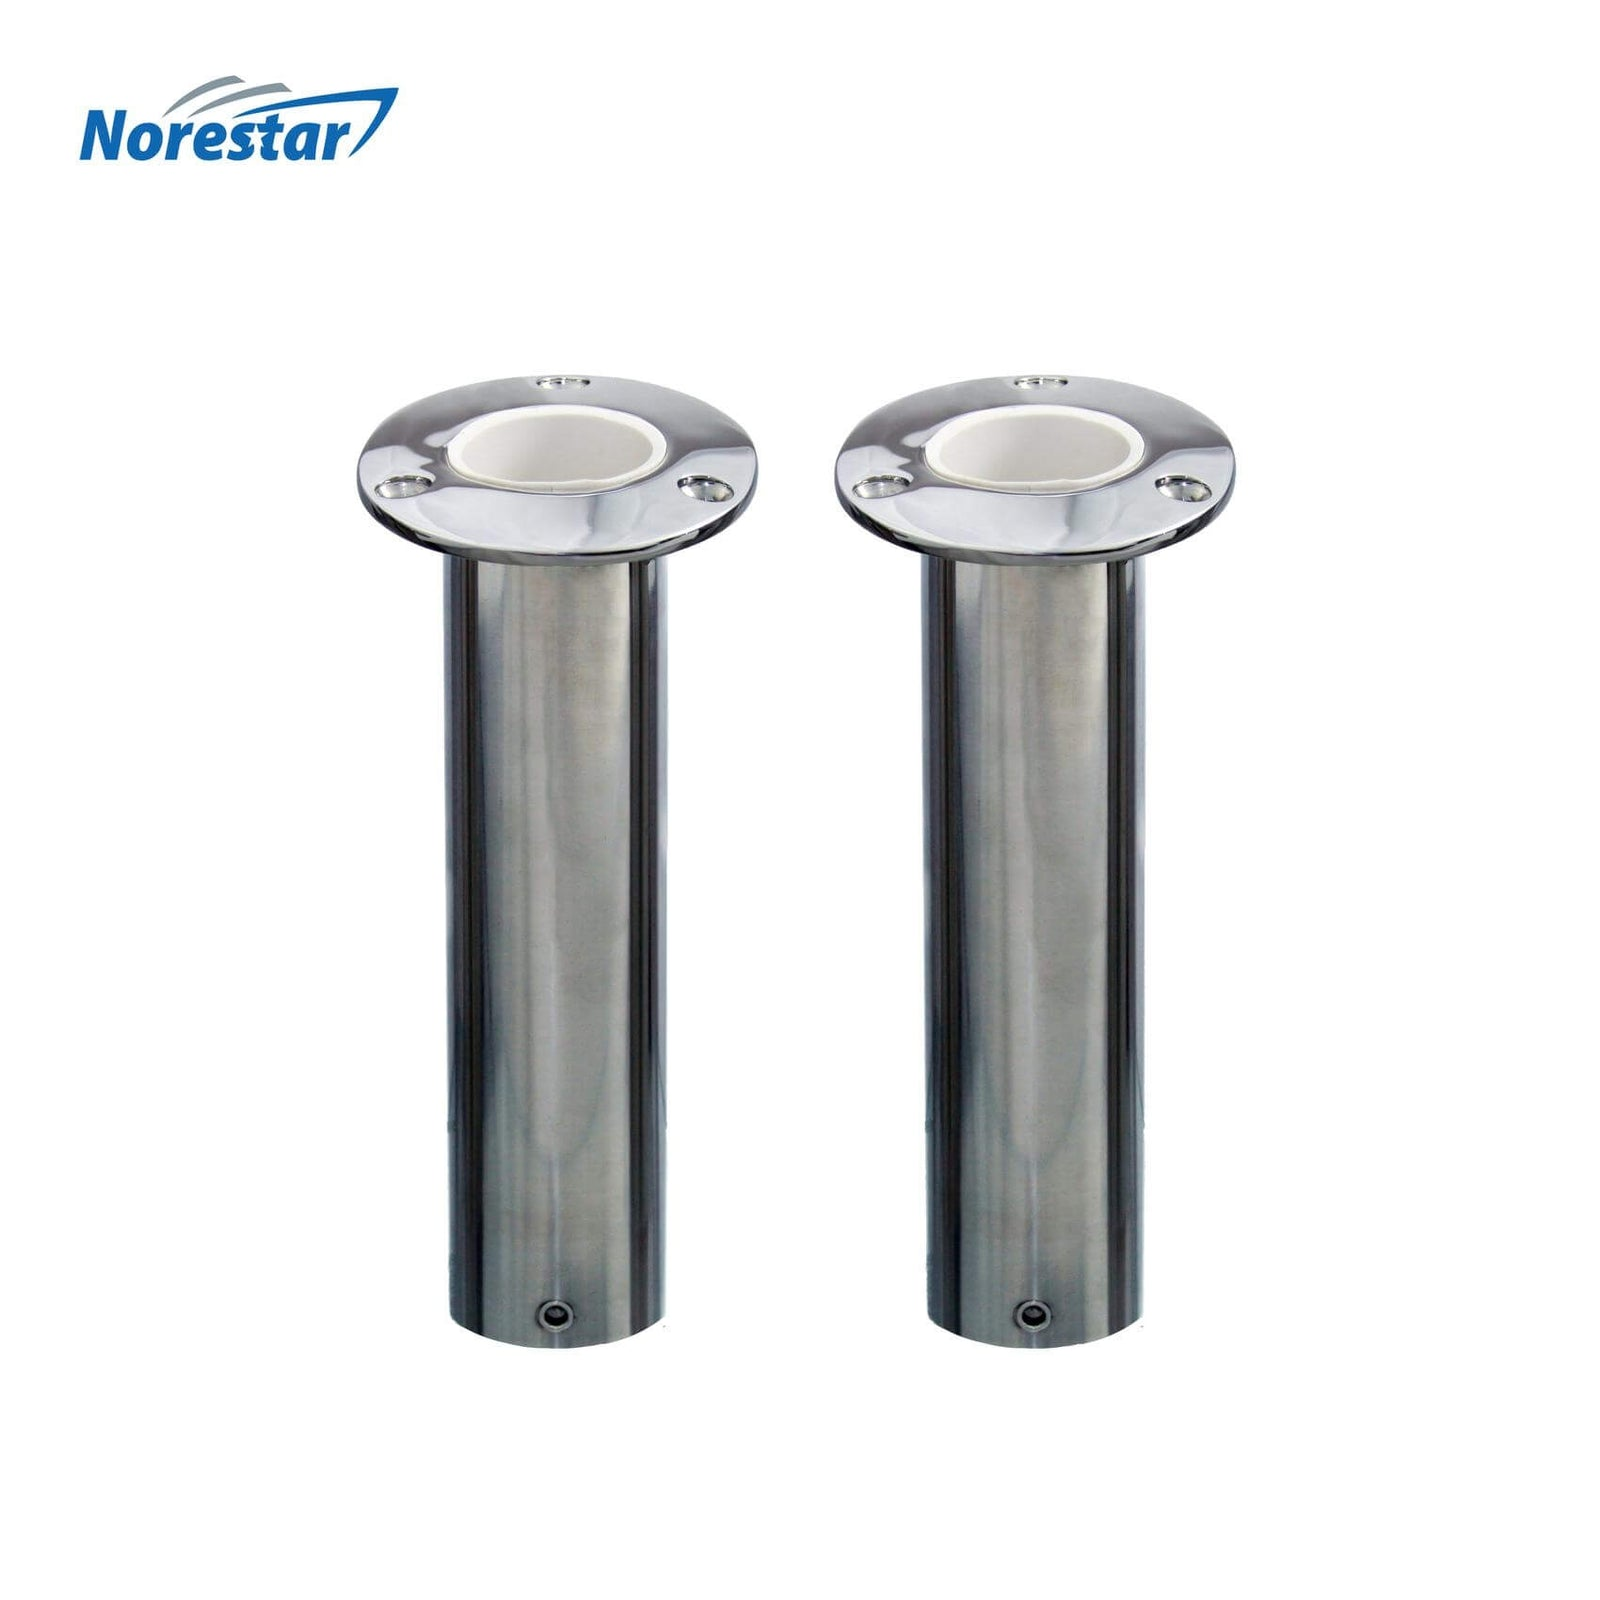 Two Flush Mounted Stainless Steel Rod Holders, Angled 15 Degrees